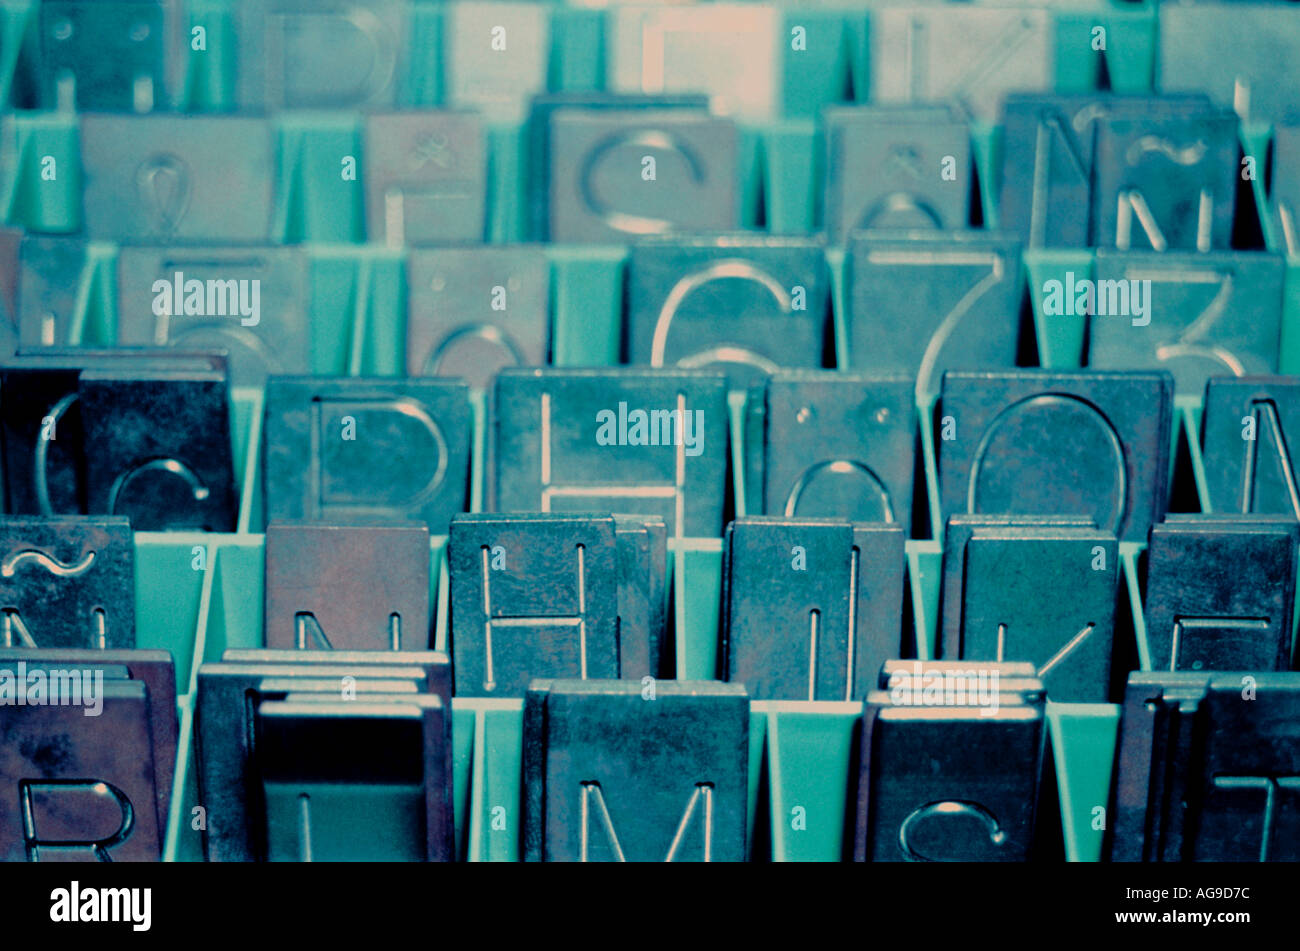 Stichplatten alphabet Stockbild